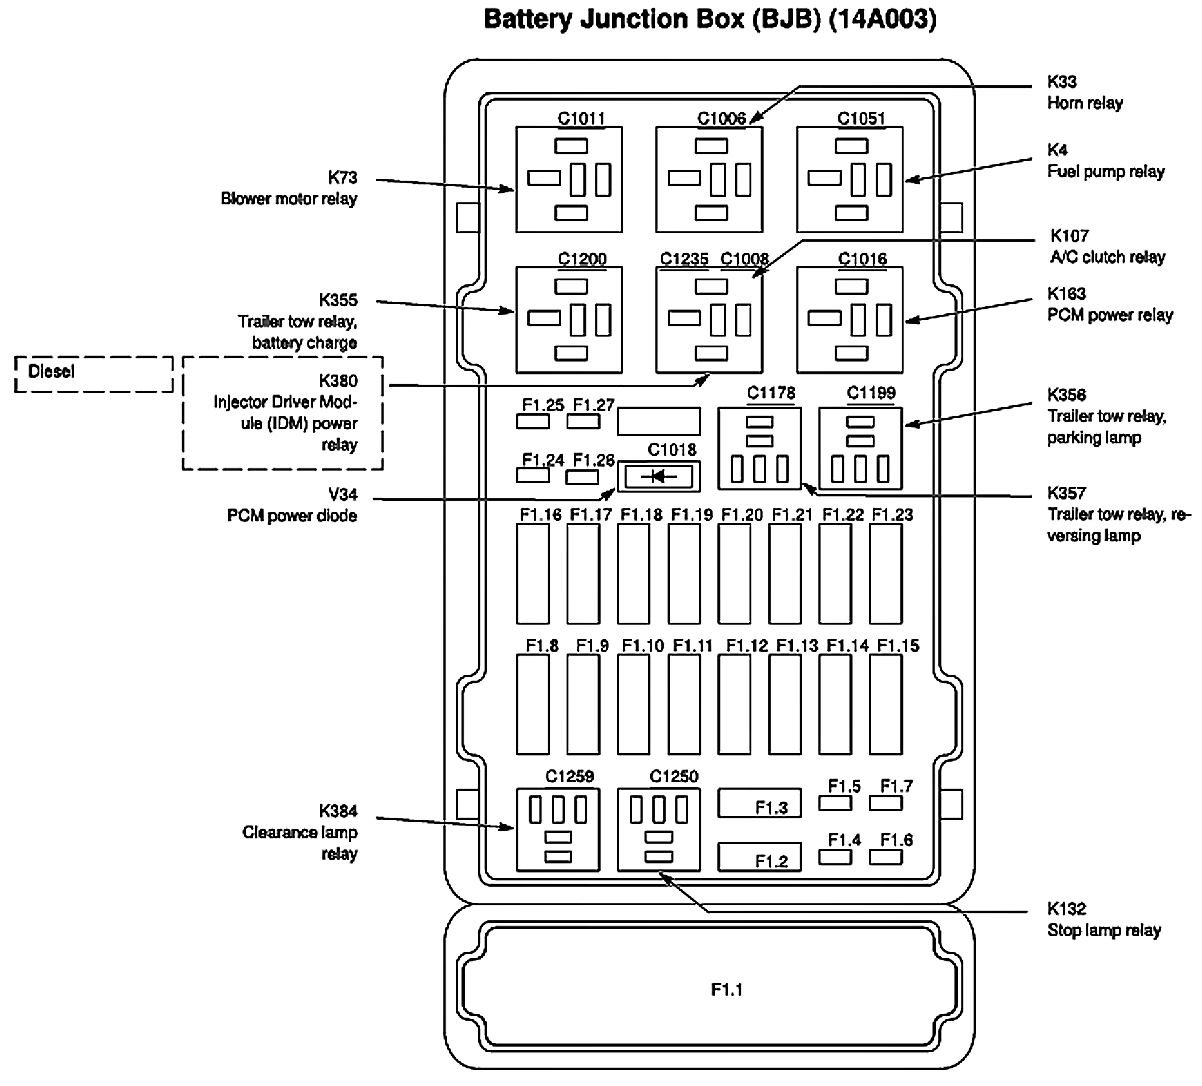 2002 ford e 150 traveler van fuse box diagram